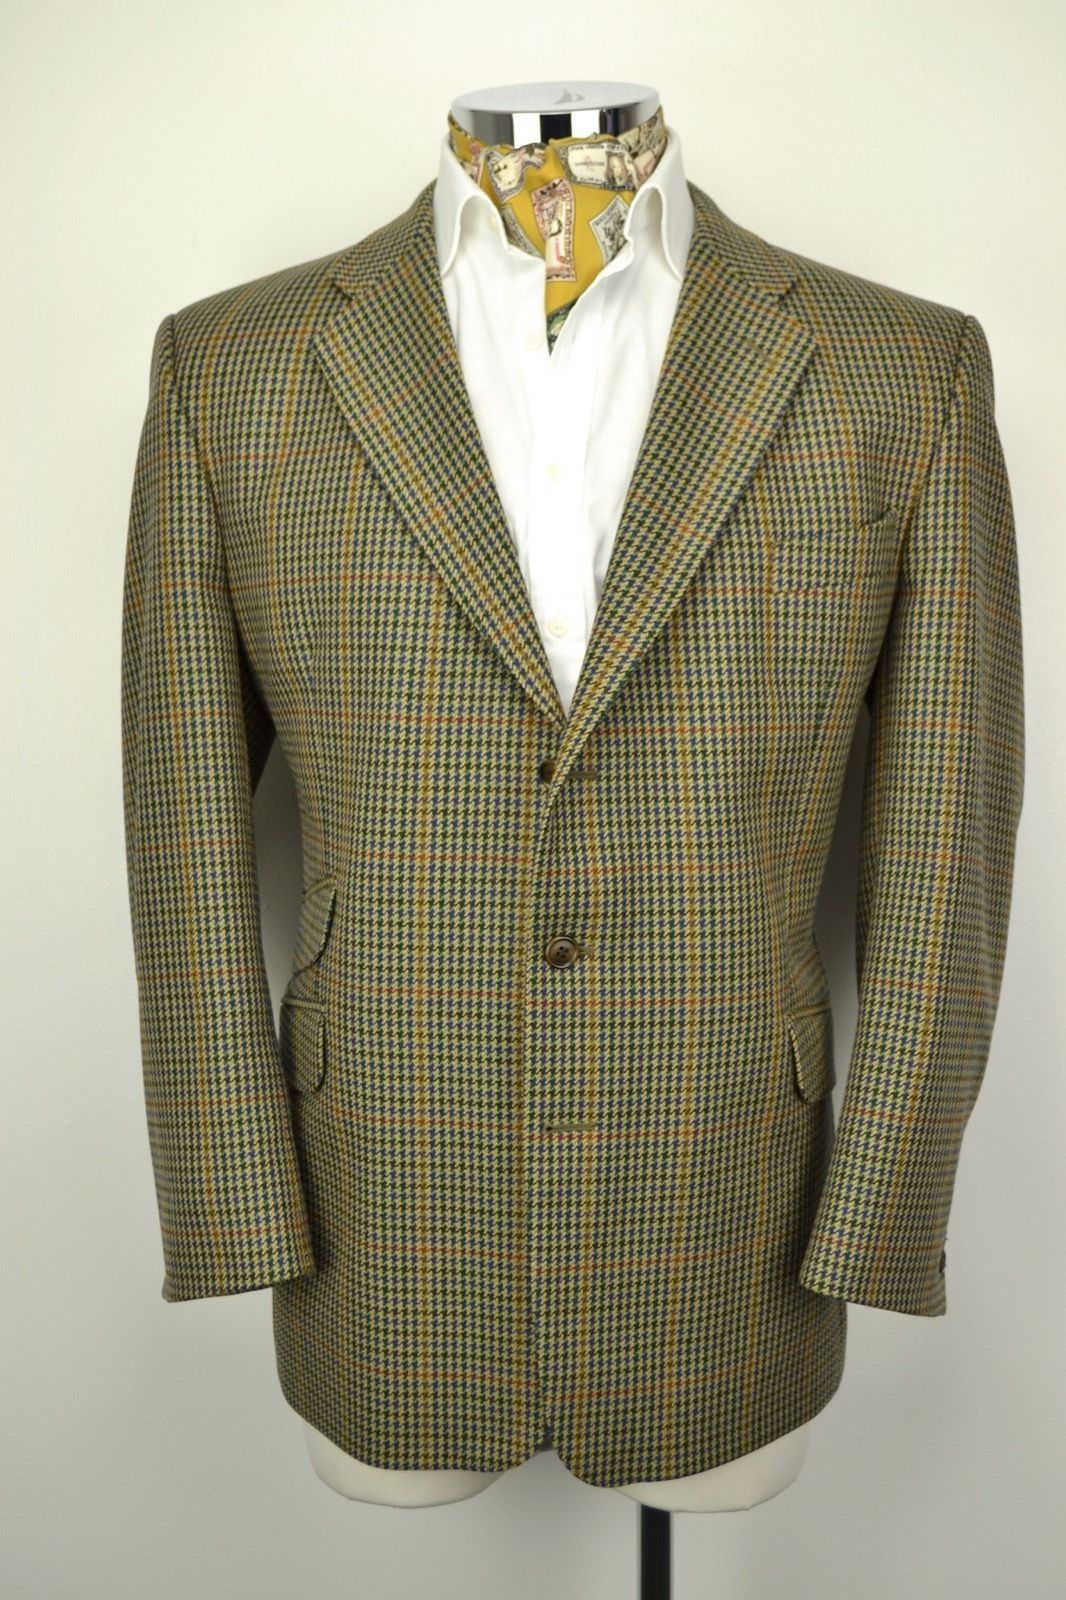 BROOK TAVERNER Saxony Supreme Tweed Blazer JACKET 46